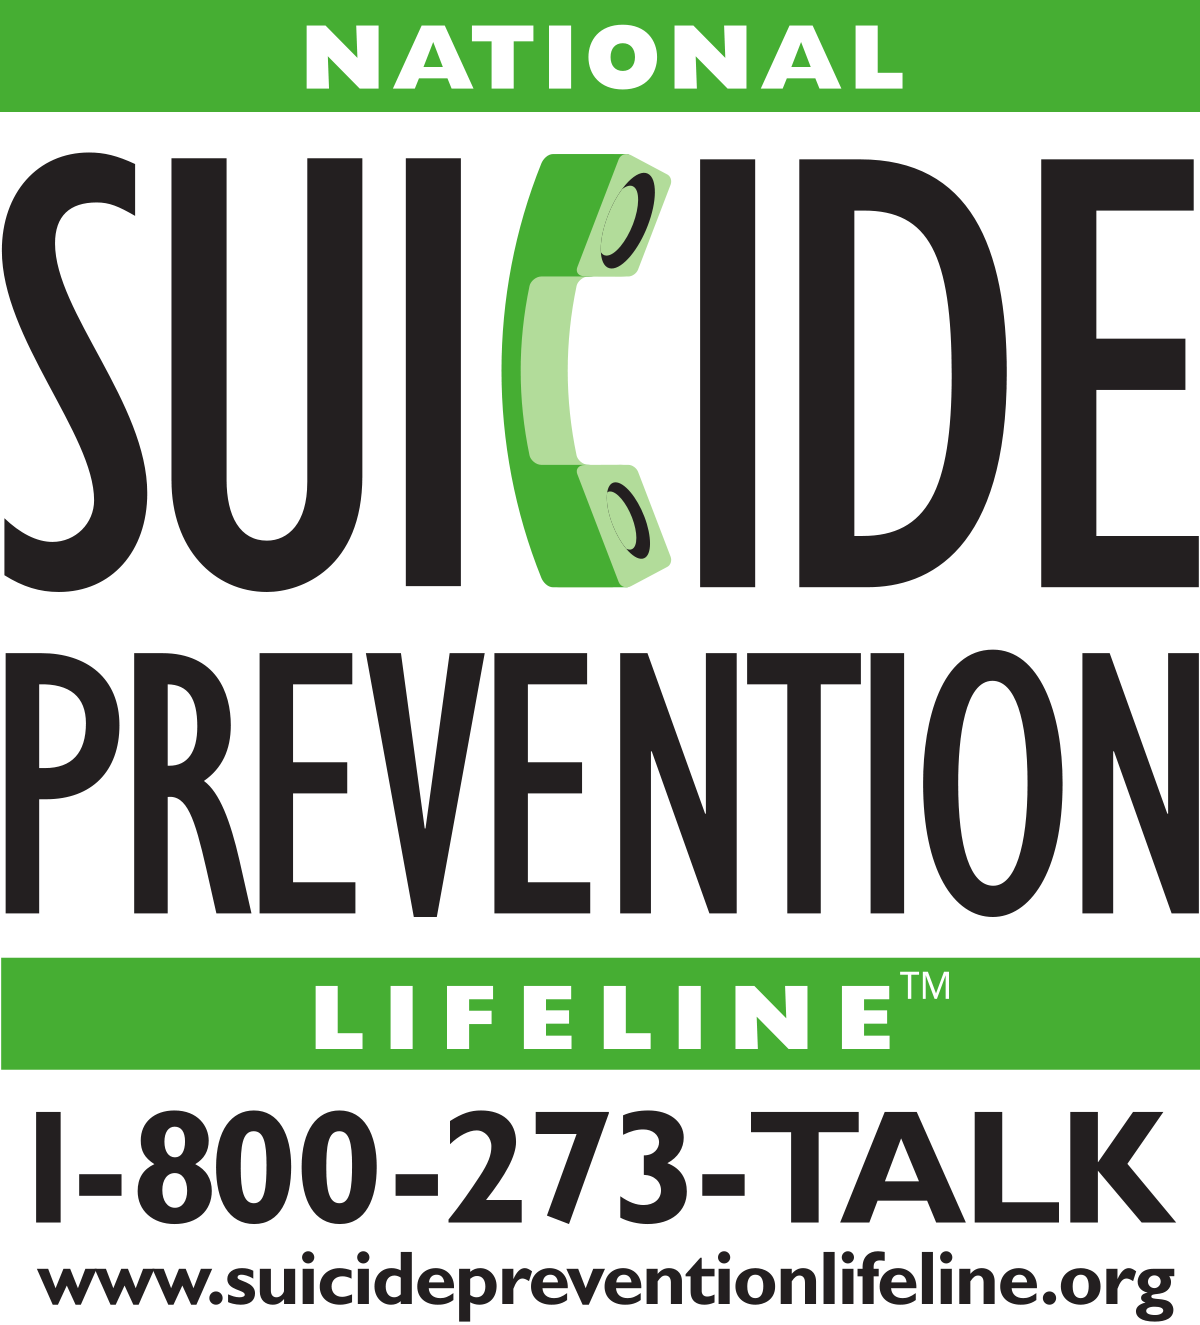 National Suicide Prevention Lifeline 1-800-273-8255 - Whether you are personally in crisis or you are concerned about someone who is, you can ALWAYS call 1-800-273-TALK and get a listening ear, resources, and support 24 hours a day, seven days a week. This hotline does not close on the weekend, holidays, or during bad weather.Veterans, please press 1.En español oprima el 2. For hearing & speech impaired with TTY equipment 1-800-799-4TTY (4889)